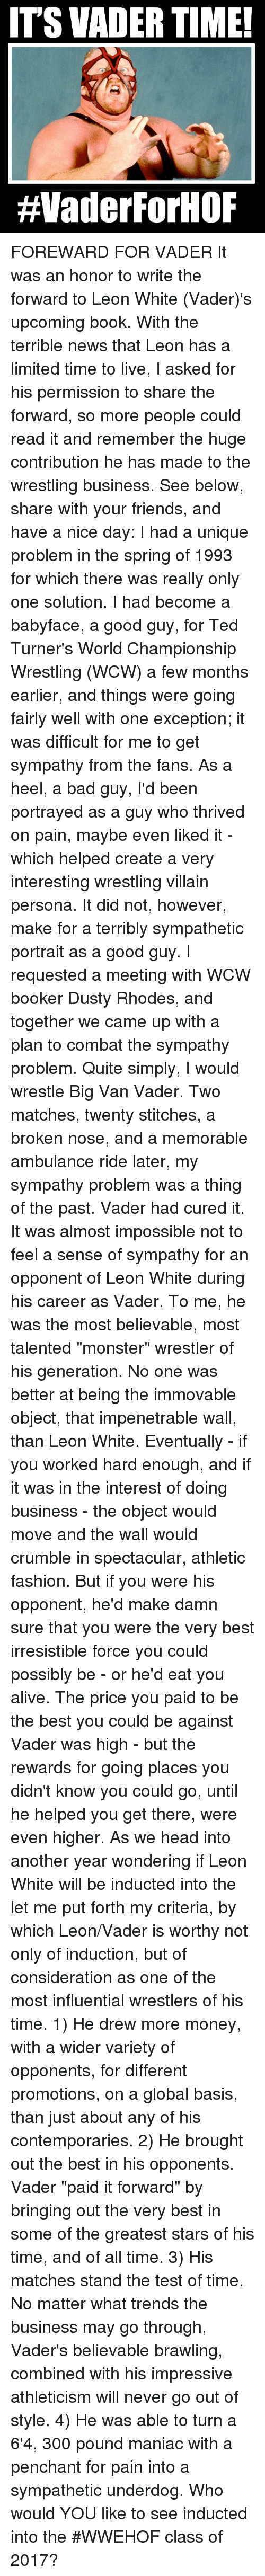 "induction: ITS VADER TIME!  HVaderForHOF FOREWARD FOR VADER It was an honor to write the forward to Leon White (Vader)'s upcoming book. With the terrible news that Leon has a limited time to live, I asked for his permission to share the forward, so more people could read it and remember the huge contribution he has made to the wrestling business.  See below, share with your friends, and have a nice day:  I had a unique problem in the spring of 1993 for which there was really only one solution. I had become a babyface, a good guy, for Ted Turner's World Championship Wrestling (WCW) a few months earlier, and things were going fairly well with one exception; it was difficult for me to get sympathy from the fans. As a heel, a bad guy,  I'd been portrayed as a guy who thrived on pain, maybe even liked it -  which helped create a very interesting wrestling villain persona. It did not, however, make for a terribly sympathetic portrait as a good guy.   I requested a meeting with WCW booker Dusty Rhodes, and together we came up with a plan to combat the sympathy problem. Quite simply, I would wrestle Big Van Vader. Two matches, twenty stitches, a broken nose, and a memorable ambulance ride later, my sympathy problem was a thing of the past. Vader had cured it.   It was almost impossible not to feel a sense of sympathy for an opponent of Leon White during his career as Vader. To me, he was the most believable, most talented ""monster"" wrestler of his generation. No one was better at being the immovable object, that impenetrable wall, than Leon White.  Eventually - if you worked hard enough, and if it was in the interest of doing business - the object would move and the wall would crumble in spectacular, athletic fashion. But if you were his opponent, he'd make damn sure that you were the very best irresistible force you could possibly be - or he'd eat you alive. The price you paid to be the best you could be against Vader was high - but the rewards for going places you didn't know you could go, until he helped you get there, were even higher.   As we head into another year wondering if Leon White will be inducted into the  let me put forth my criteria, by which Leon/Vader is worthy not only of induction, but of consideration as one of the most influential wrestlers of his time.  1) He drew more money, with a wider variety of opponents, for different promotions, on a global basis, than just about any of his contemporaries.   2) He brought out the best in his opponents. Vader ""paid it forward"" by bringing out the very best in some of the greatest stars of his time, and of all time.  3) His matches stand the test of time. No matter what trends the business may go through, Vader's believable brawling, combined with his impressive athleticism will never go out of style.  4) He was able to turn a 6'4, 300 pound maniac with a penchant for pain into a sympathetic underdog.   Who would YOU like to see inducted into the #WWEHOF class of 2017?"